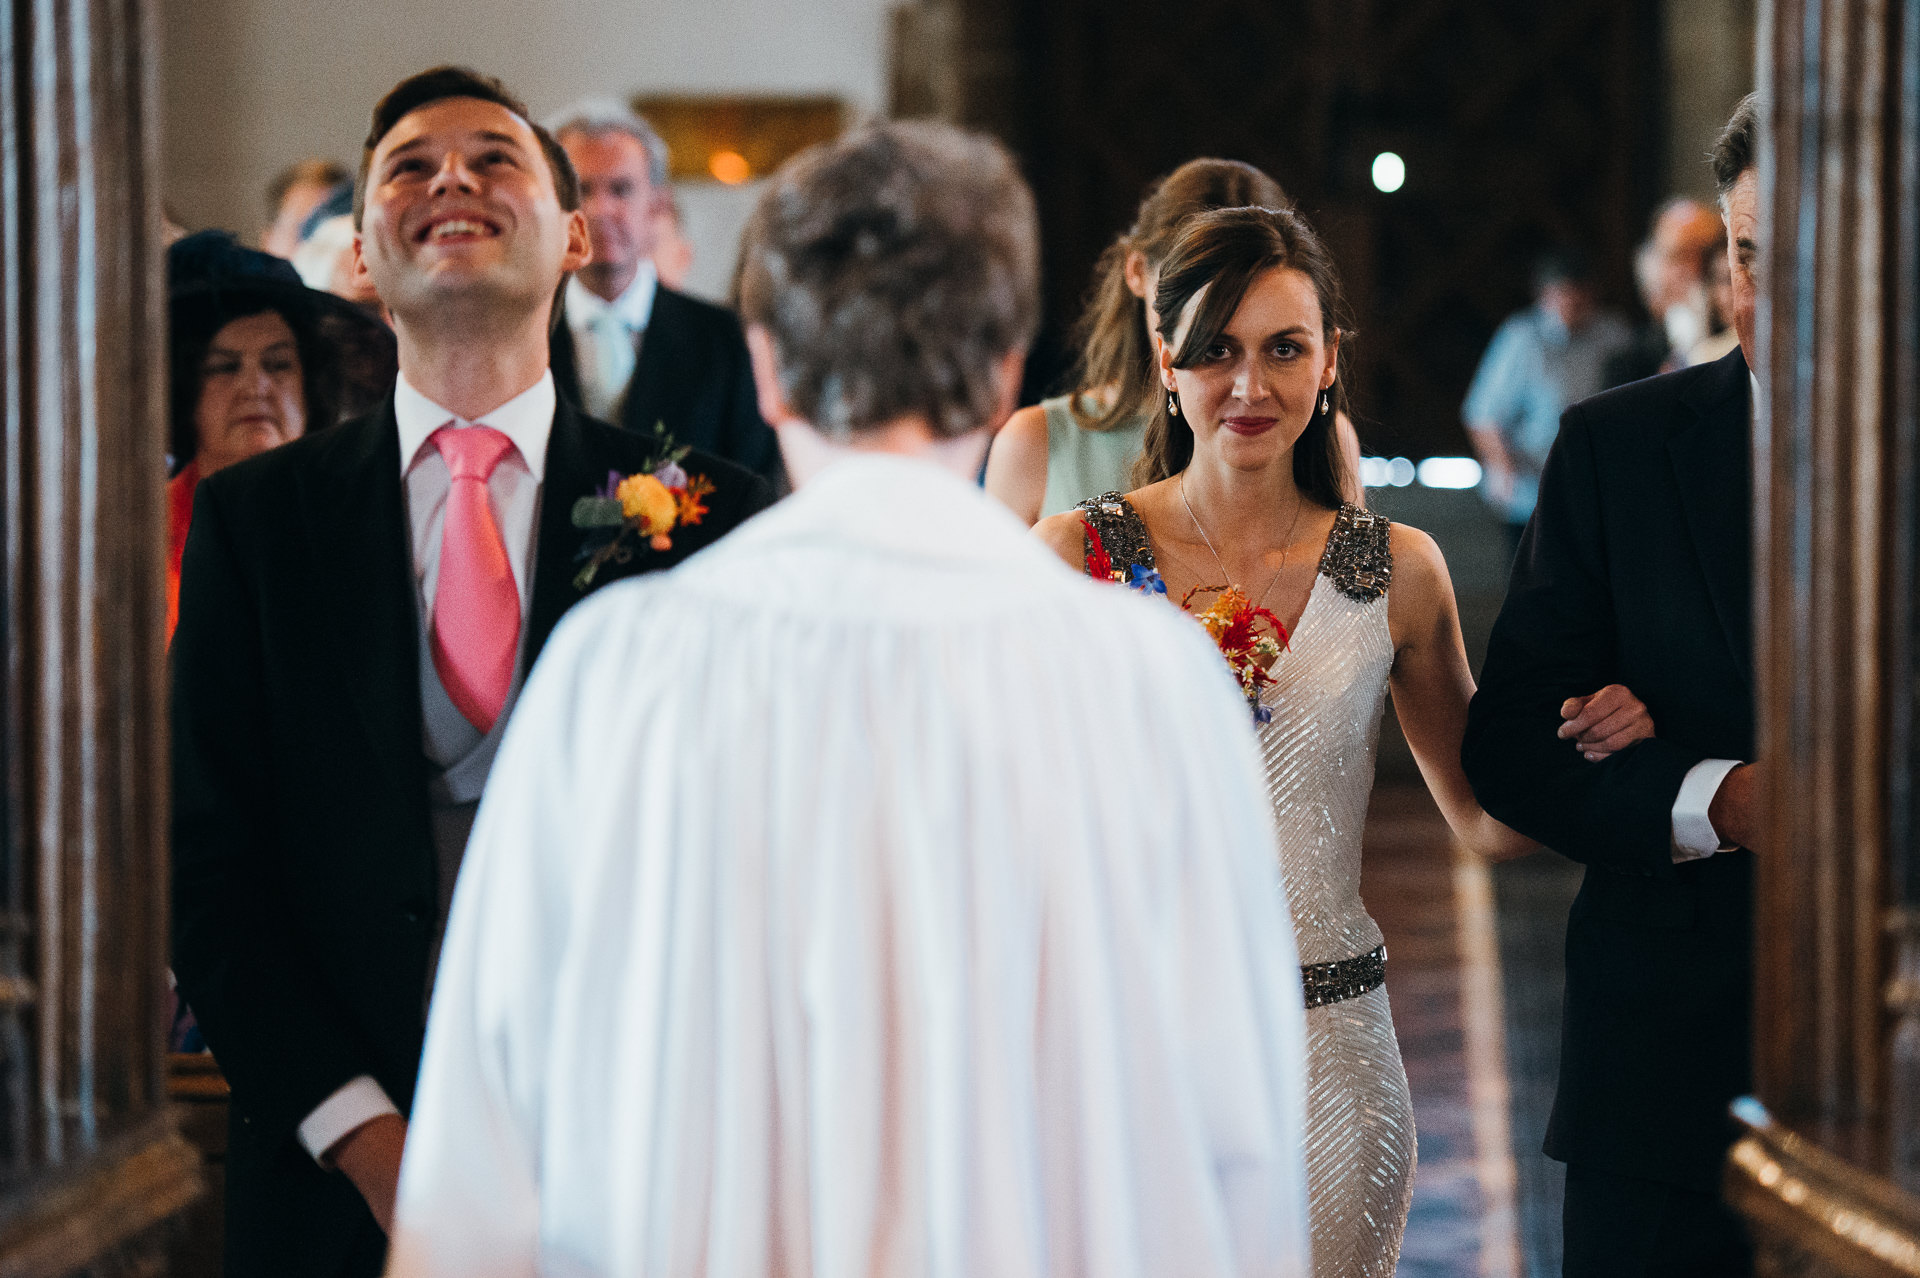 Dunster church wedding ceremony